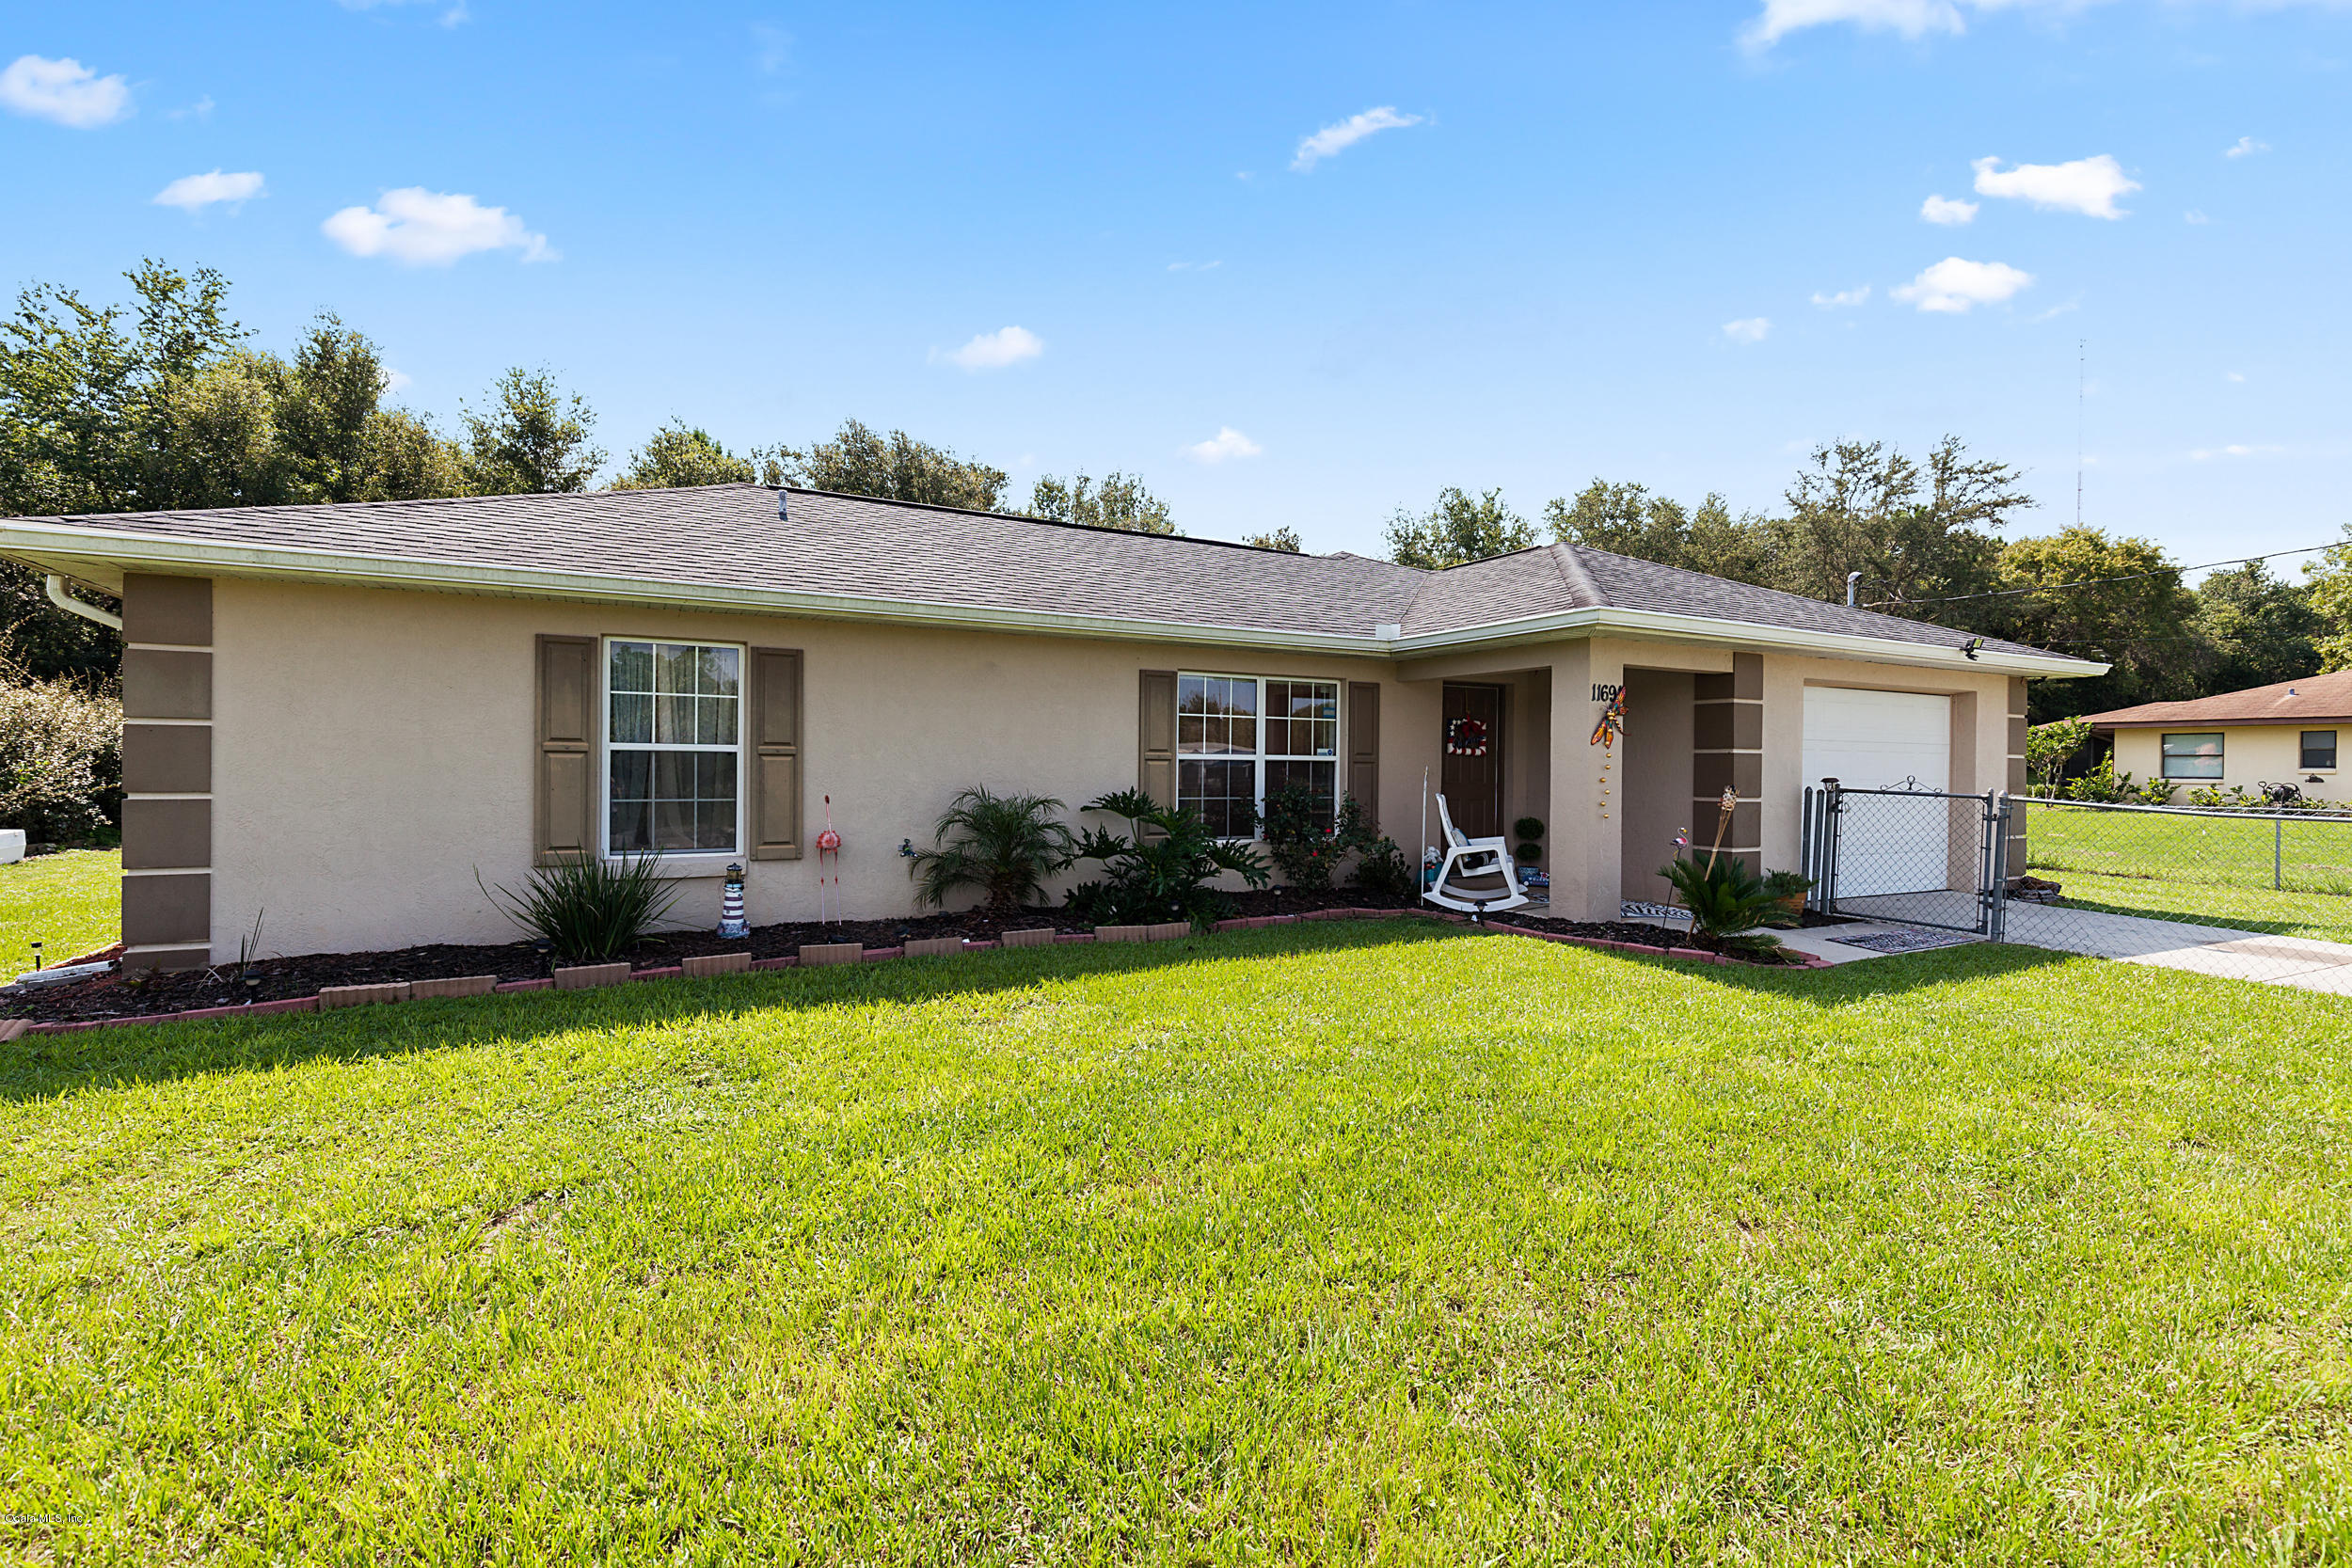 11691 SE 84TH TERRACE, BELLEVIEW, FL 34420